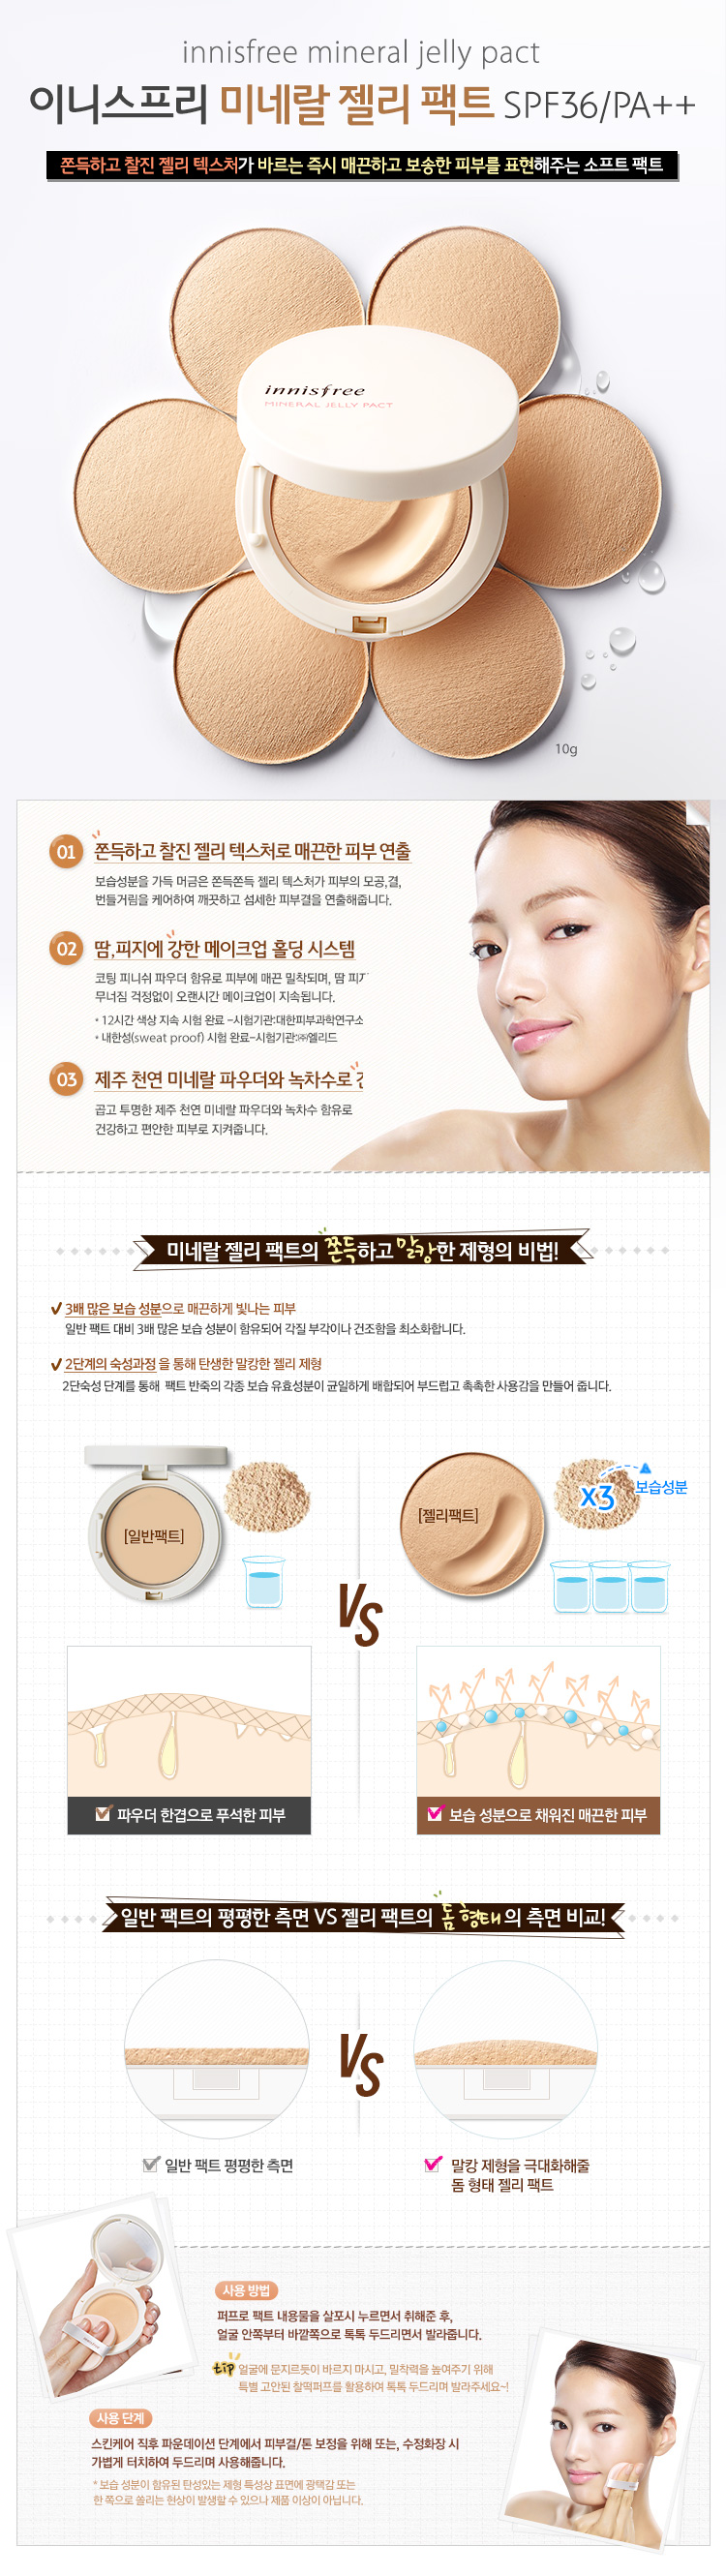 Innisfree - Mineral jelly pact